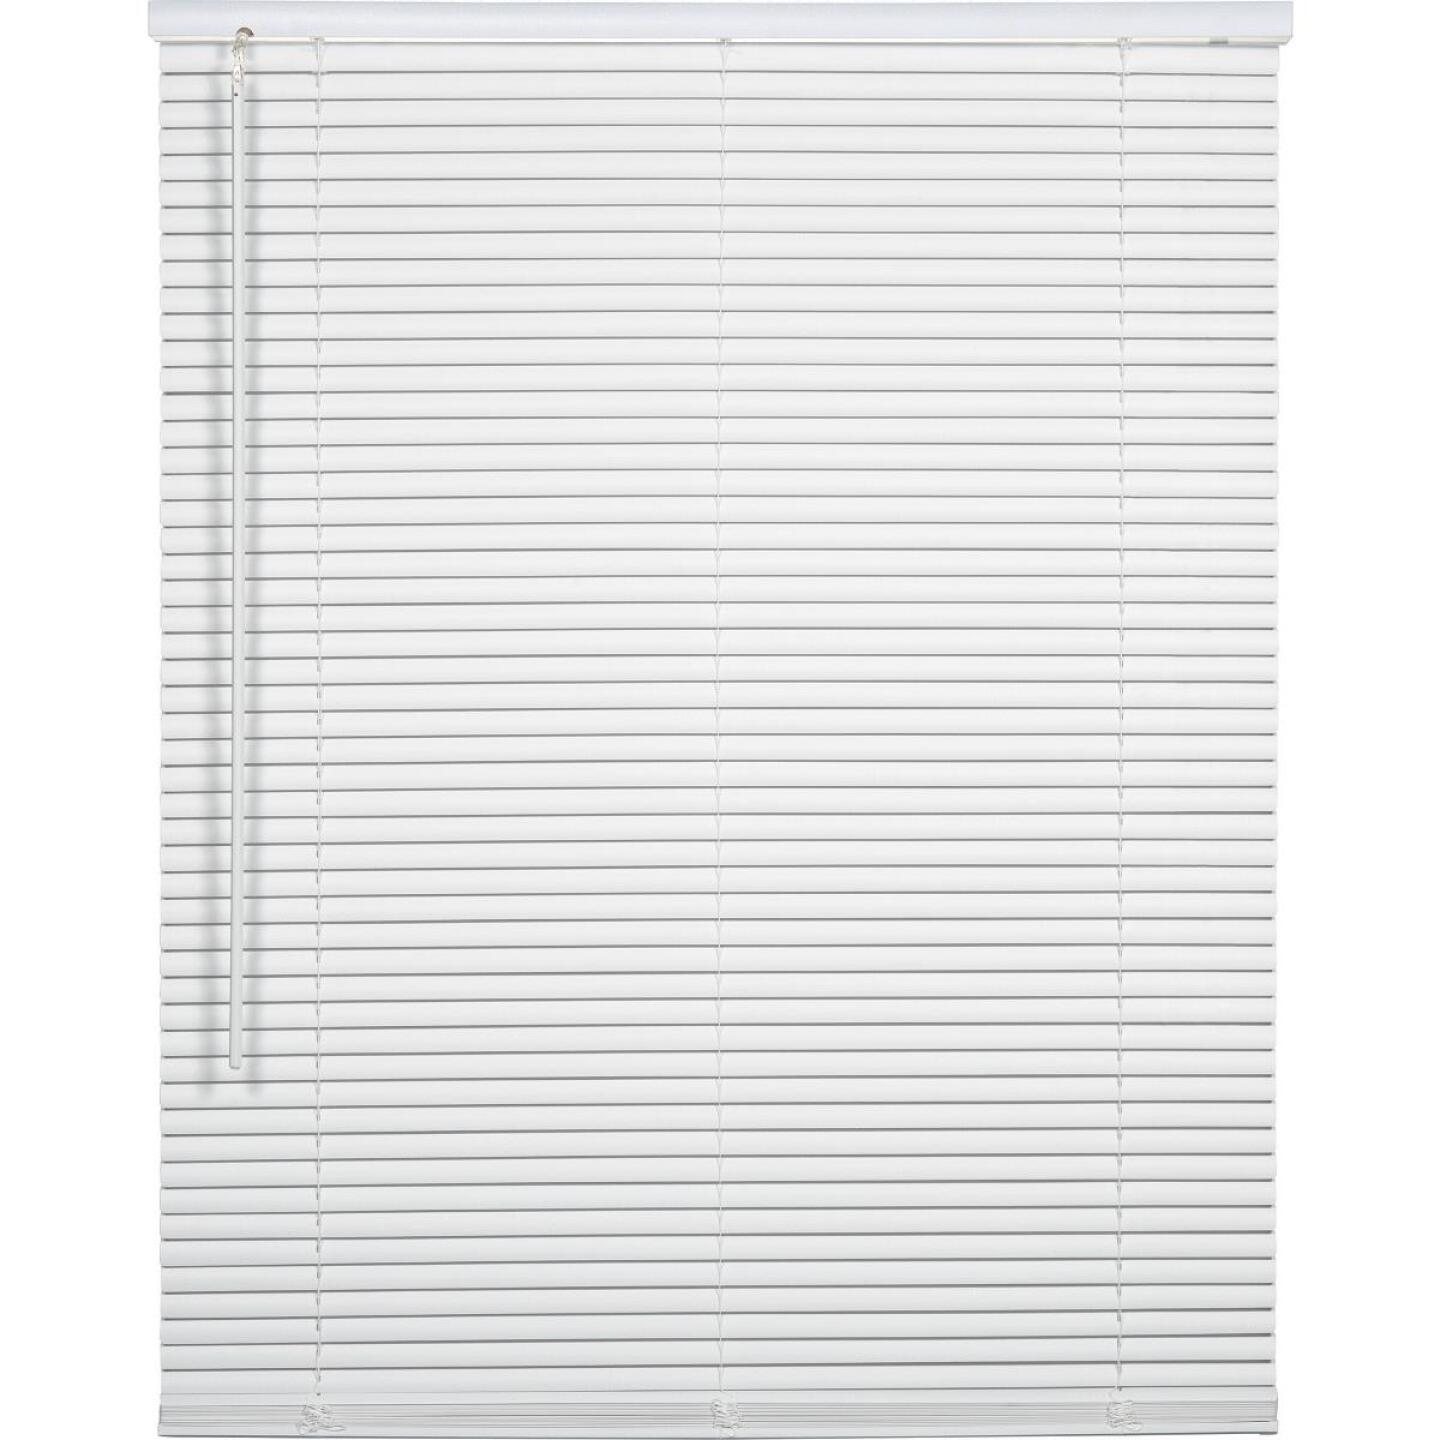 Home Impressions 29 In. x 72 In. x 1 In. White Vinyl Light Filtering Cordless Mini Blind Image 1